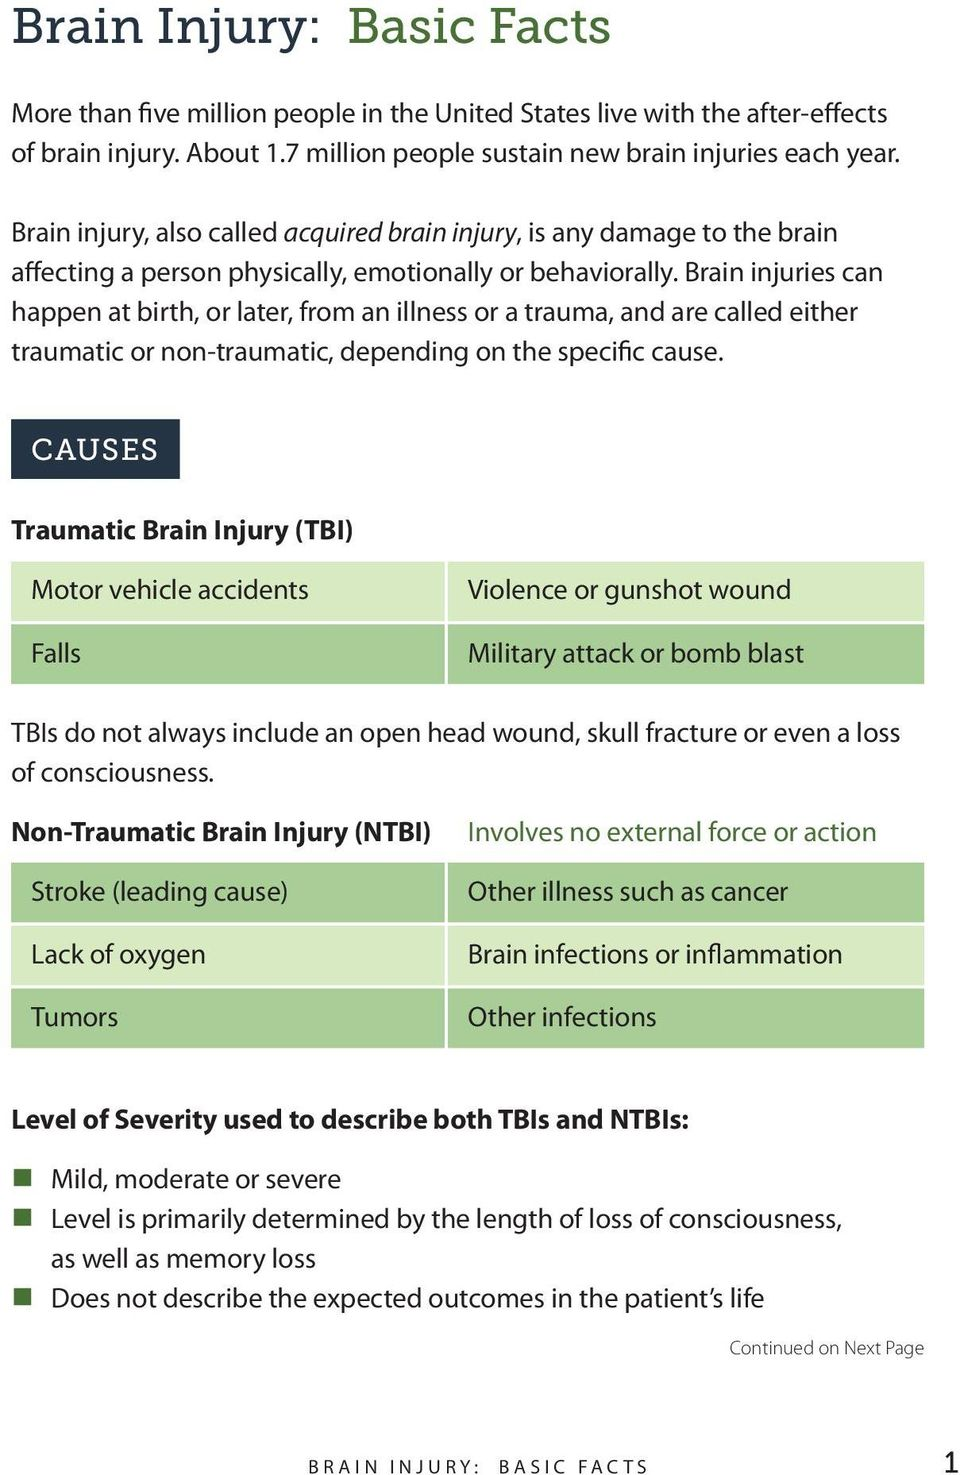 Brain injuries can happen at birth, or later, from an illness or a trauma, and are called either traumatic or non-traumatic, depending on the specific cause.